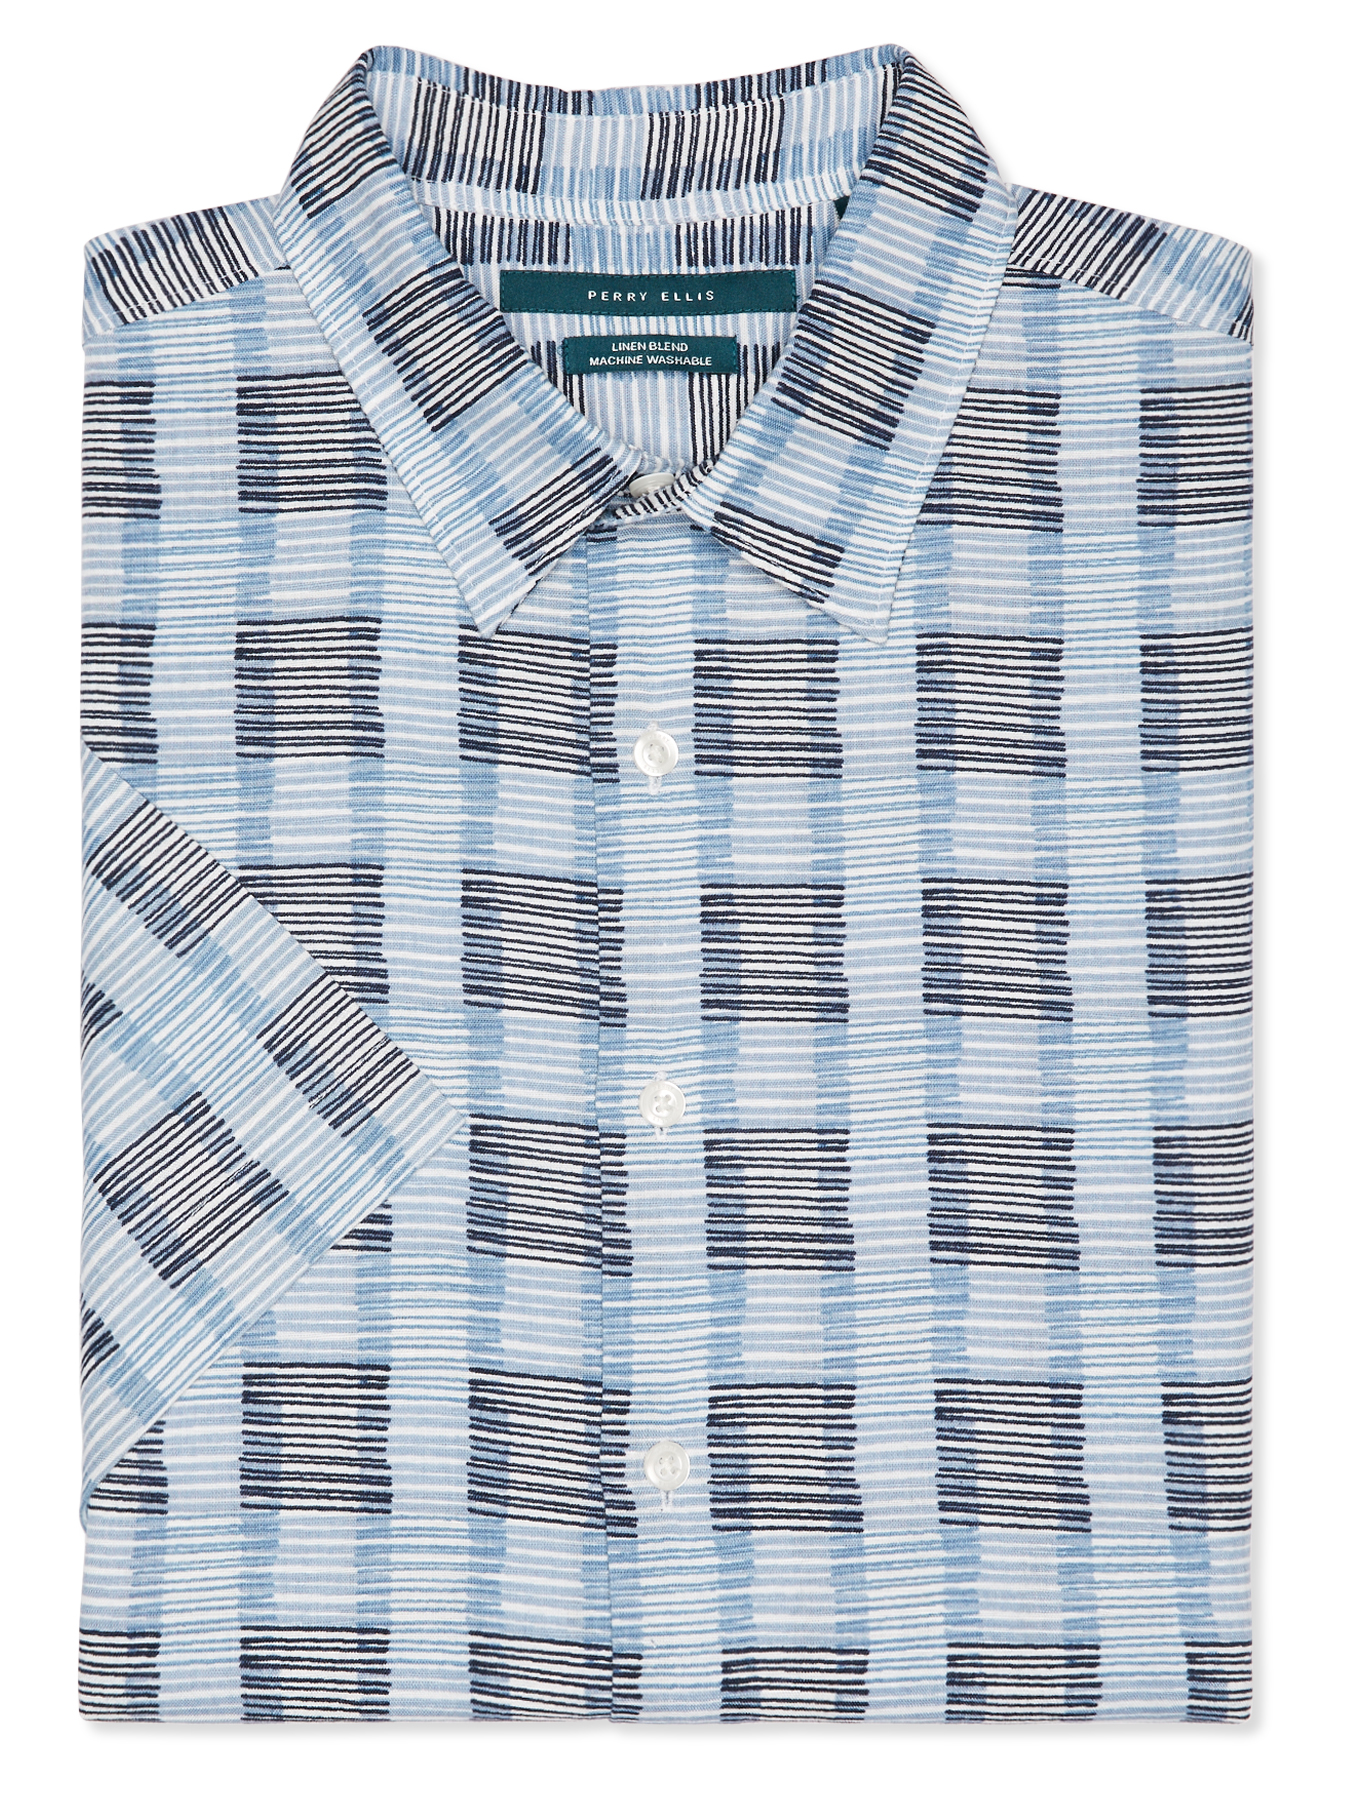 Perry Ellis Short Sleeve Multi-Color Wavy Stripe Shirt